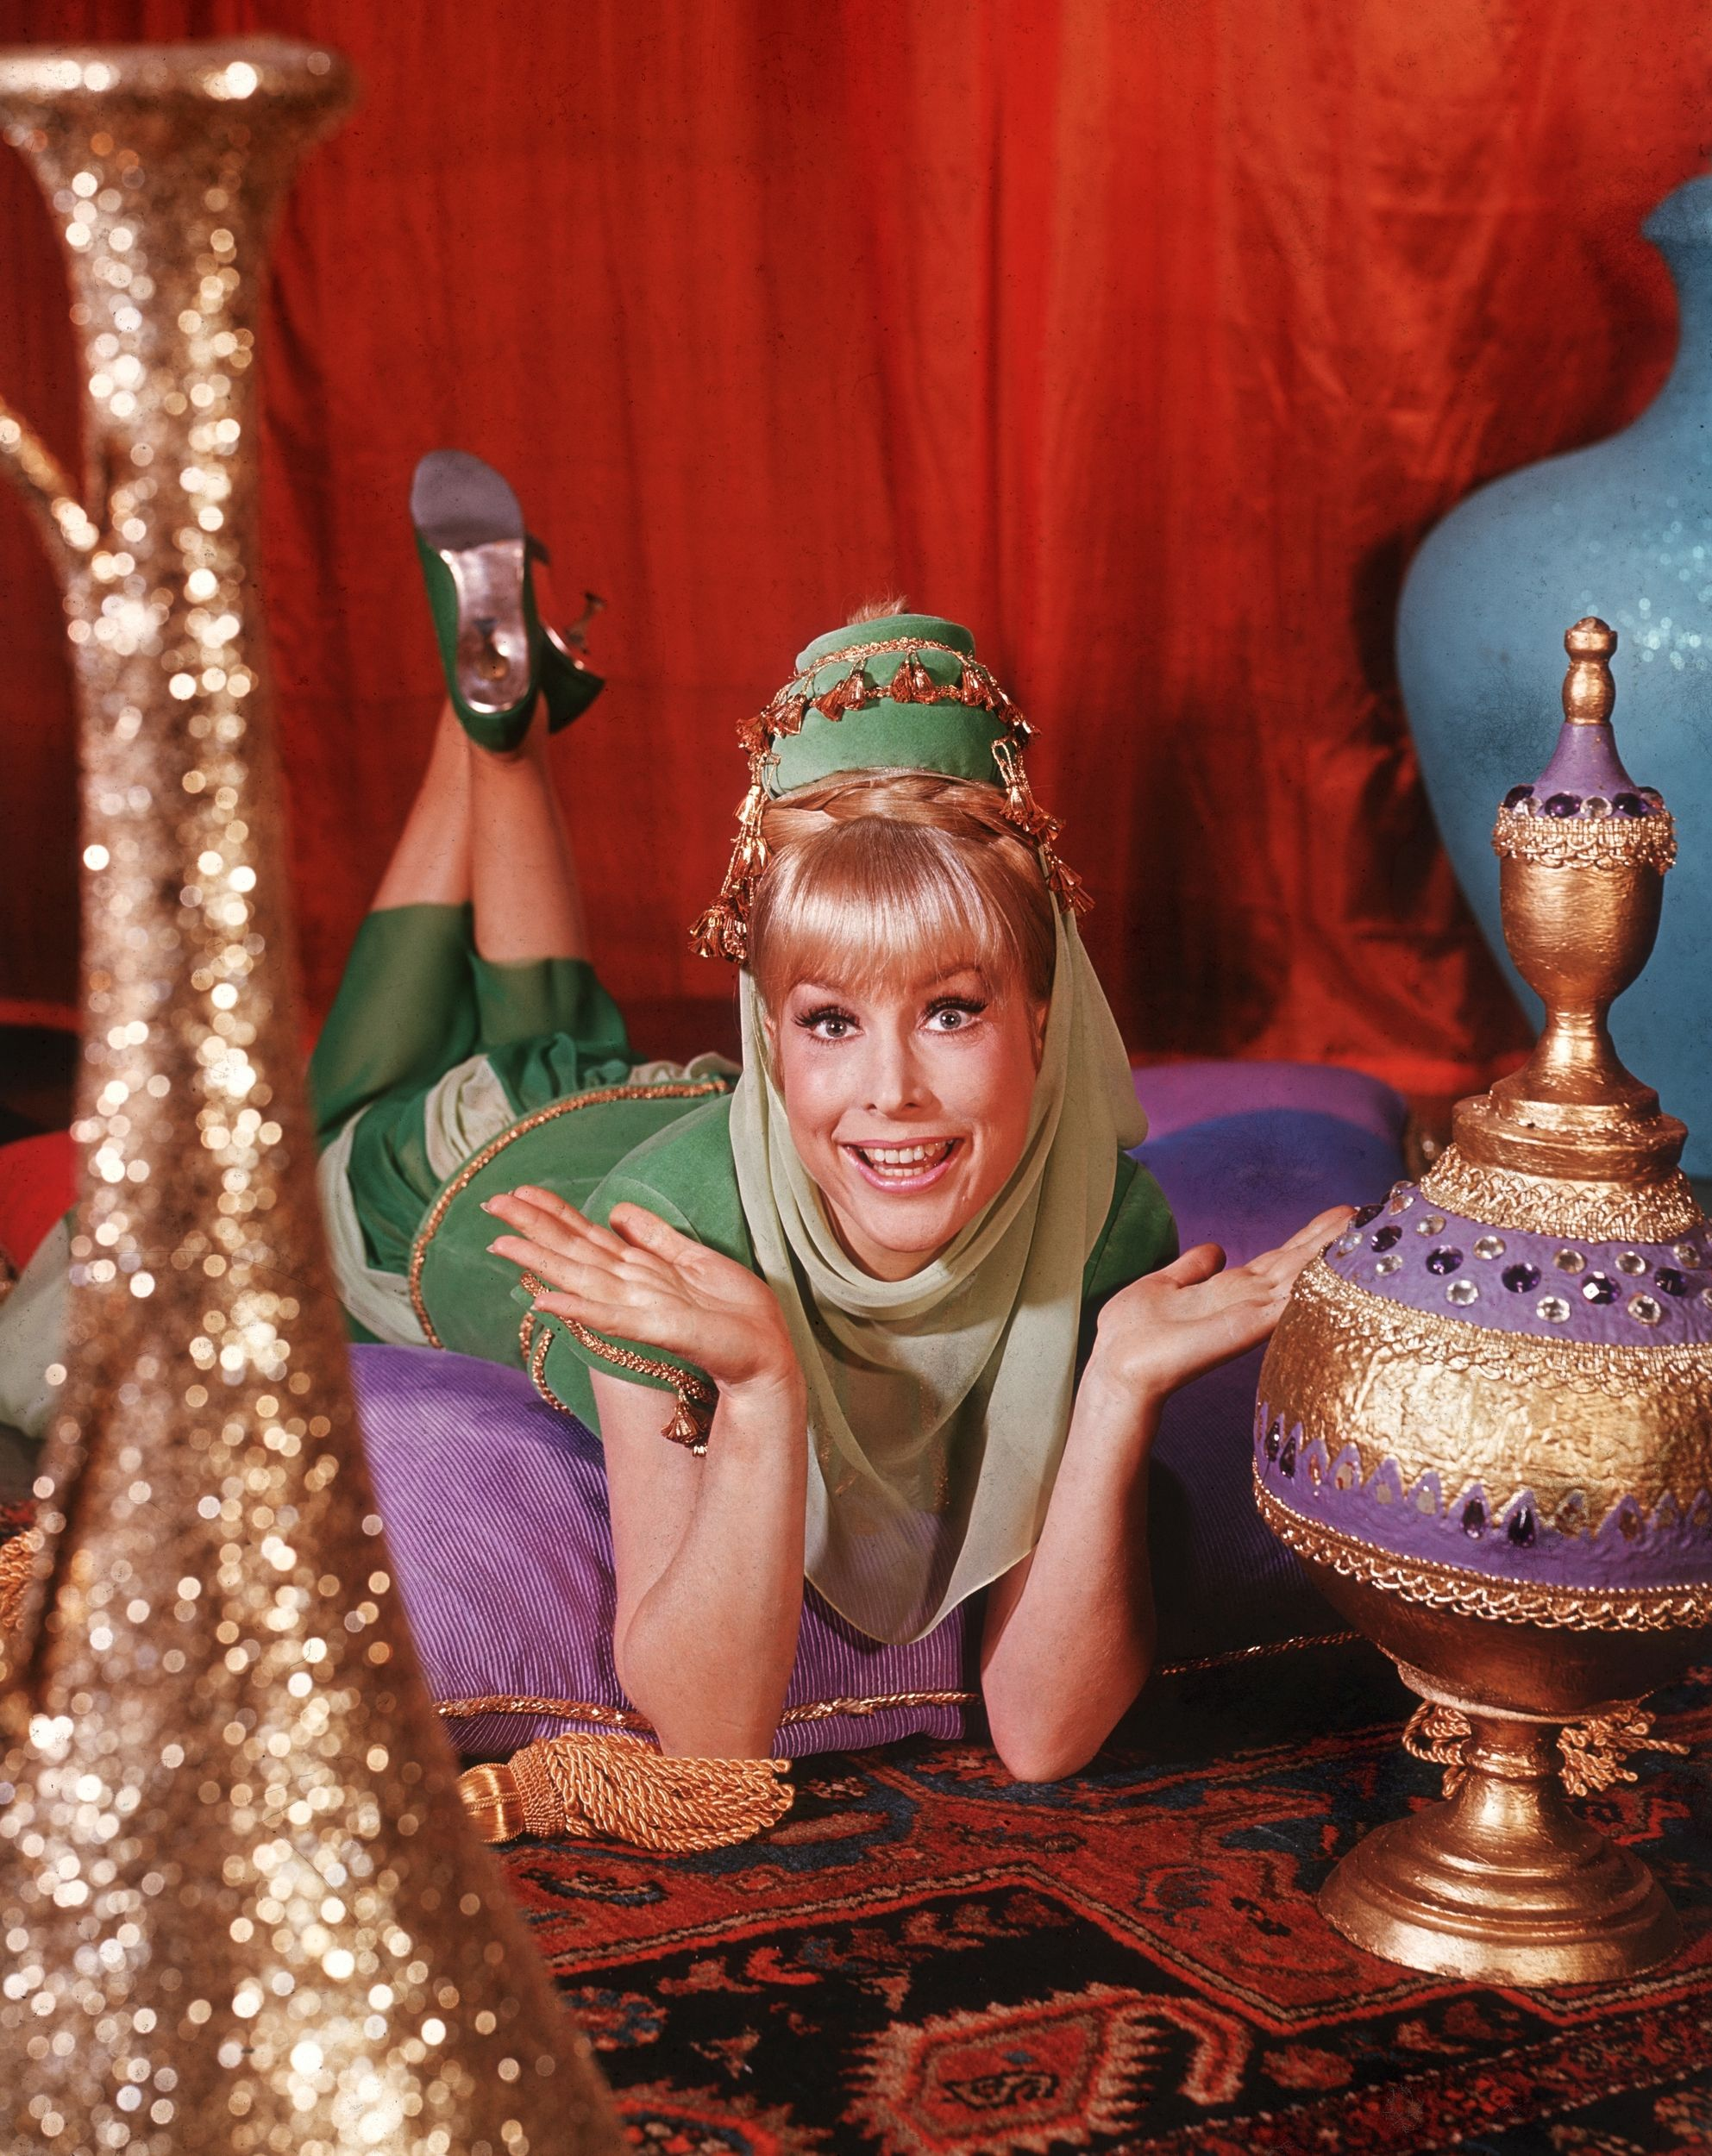 The I Dream of Jeannie bottle: TV magic with props, sets